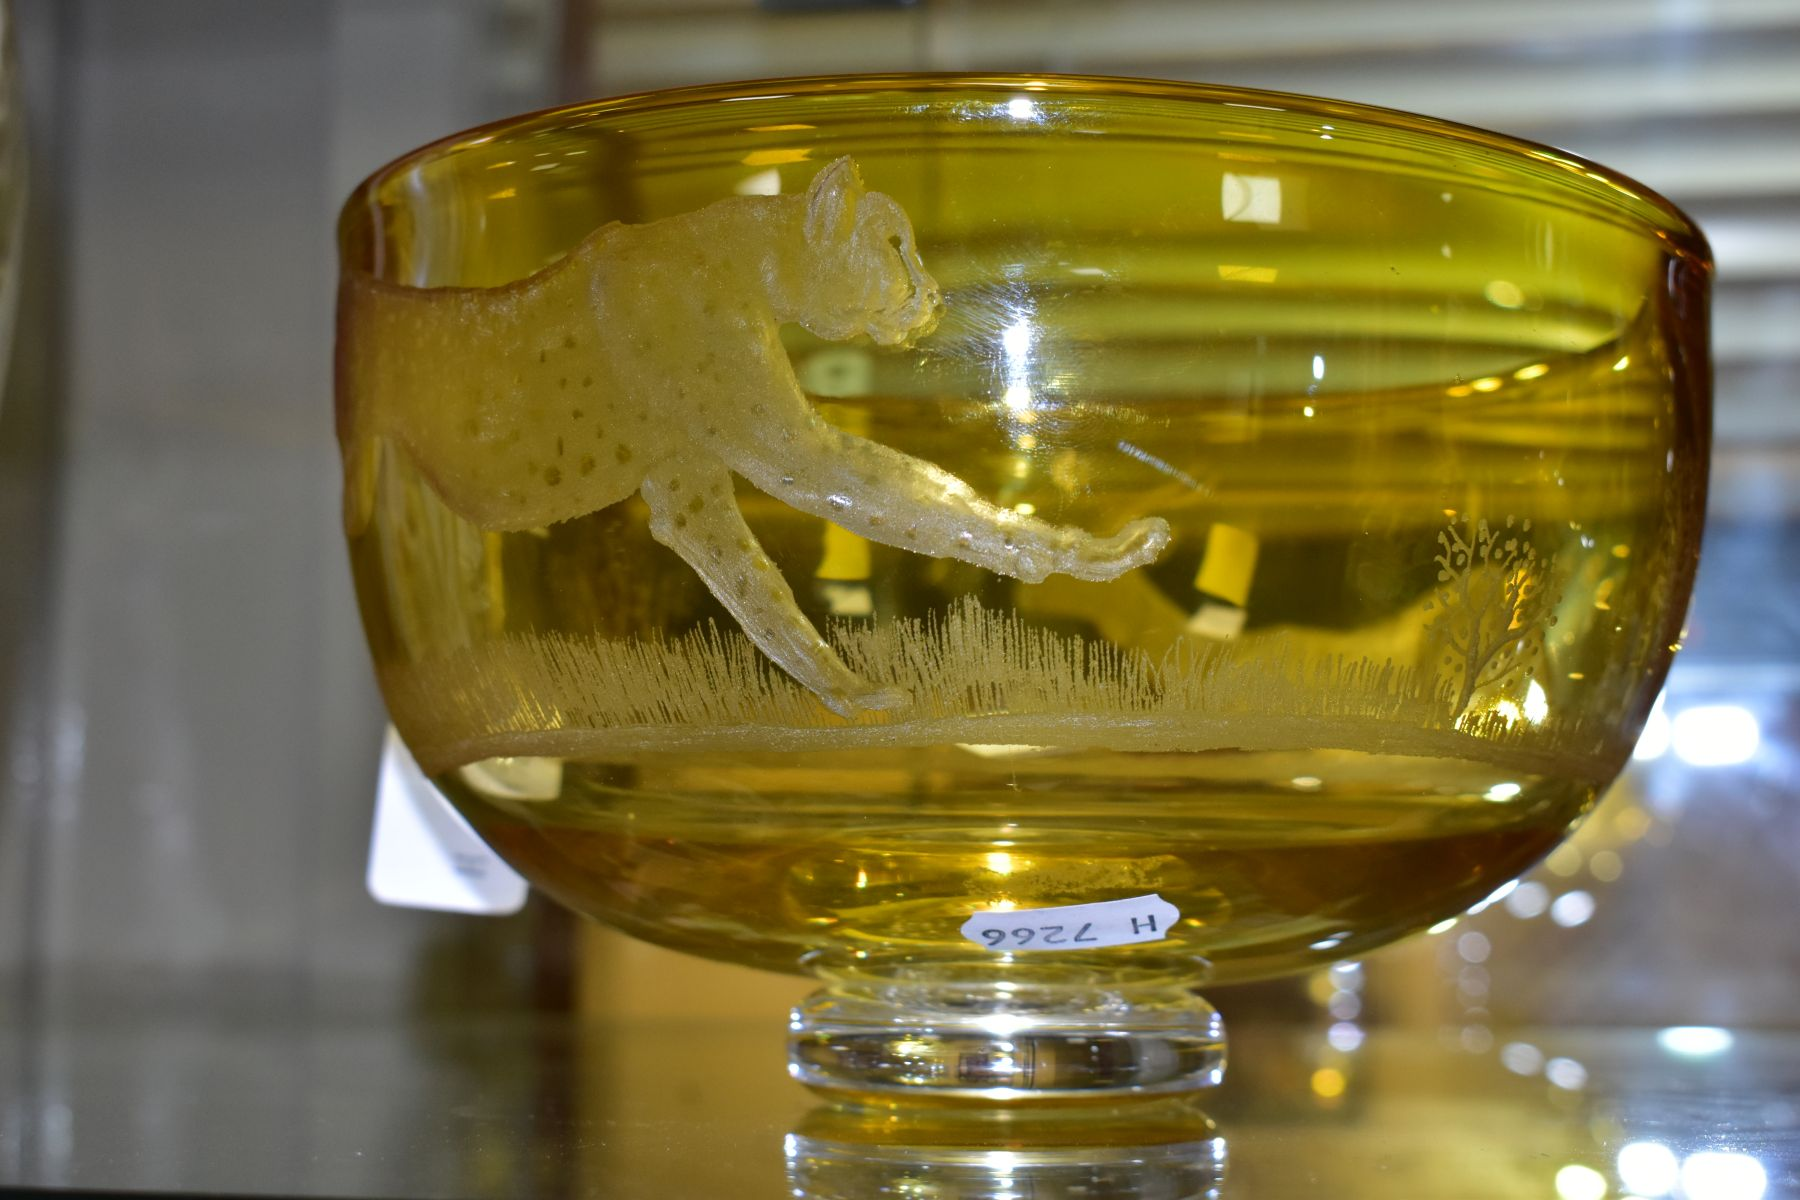 AN ENGLISH ANTIQUE GLASS FOOTED AMBER BOWL, with etched detail of Gazelle being chased by Cheetah, - Image 6 of 8